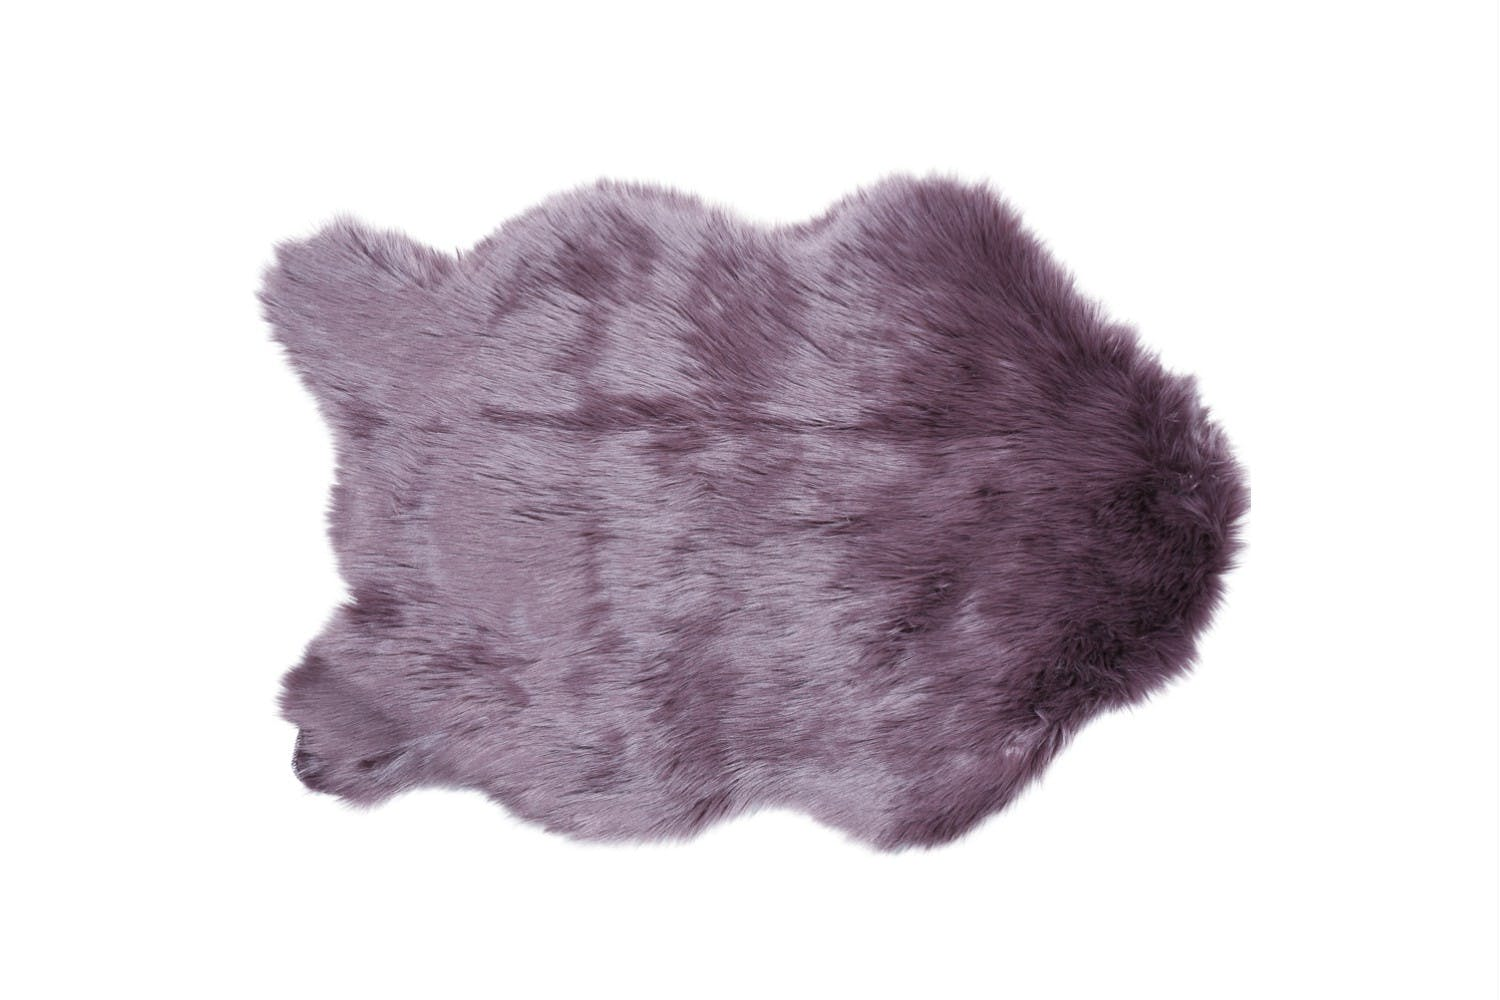 Groovy Faux Sheepskin Rug Amethyst 60 X 90 Cm Pabps2019 Chair Design Images Pabps2019Com